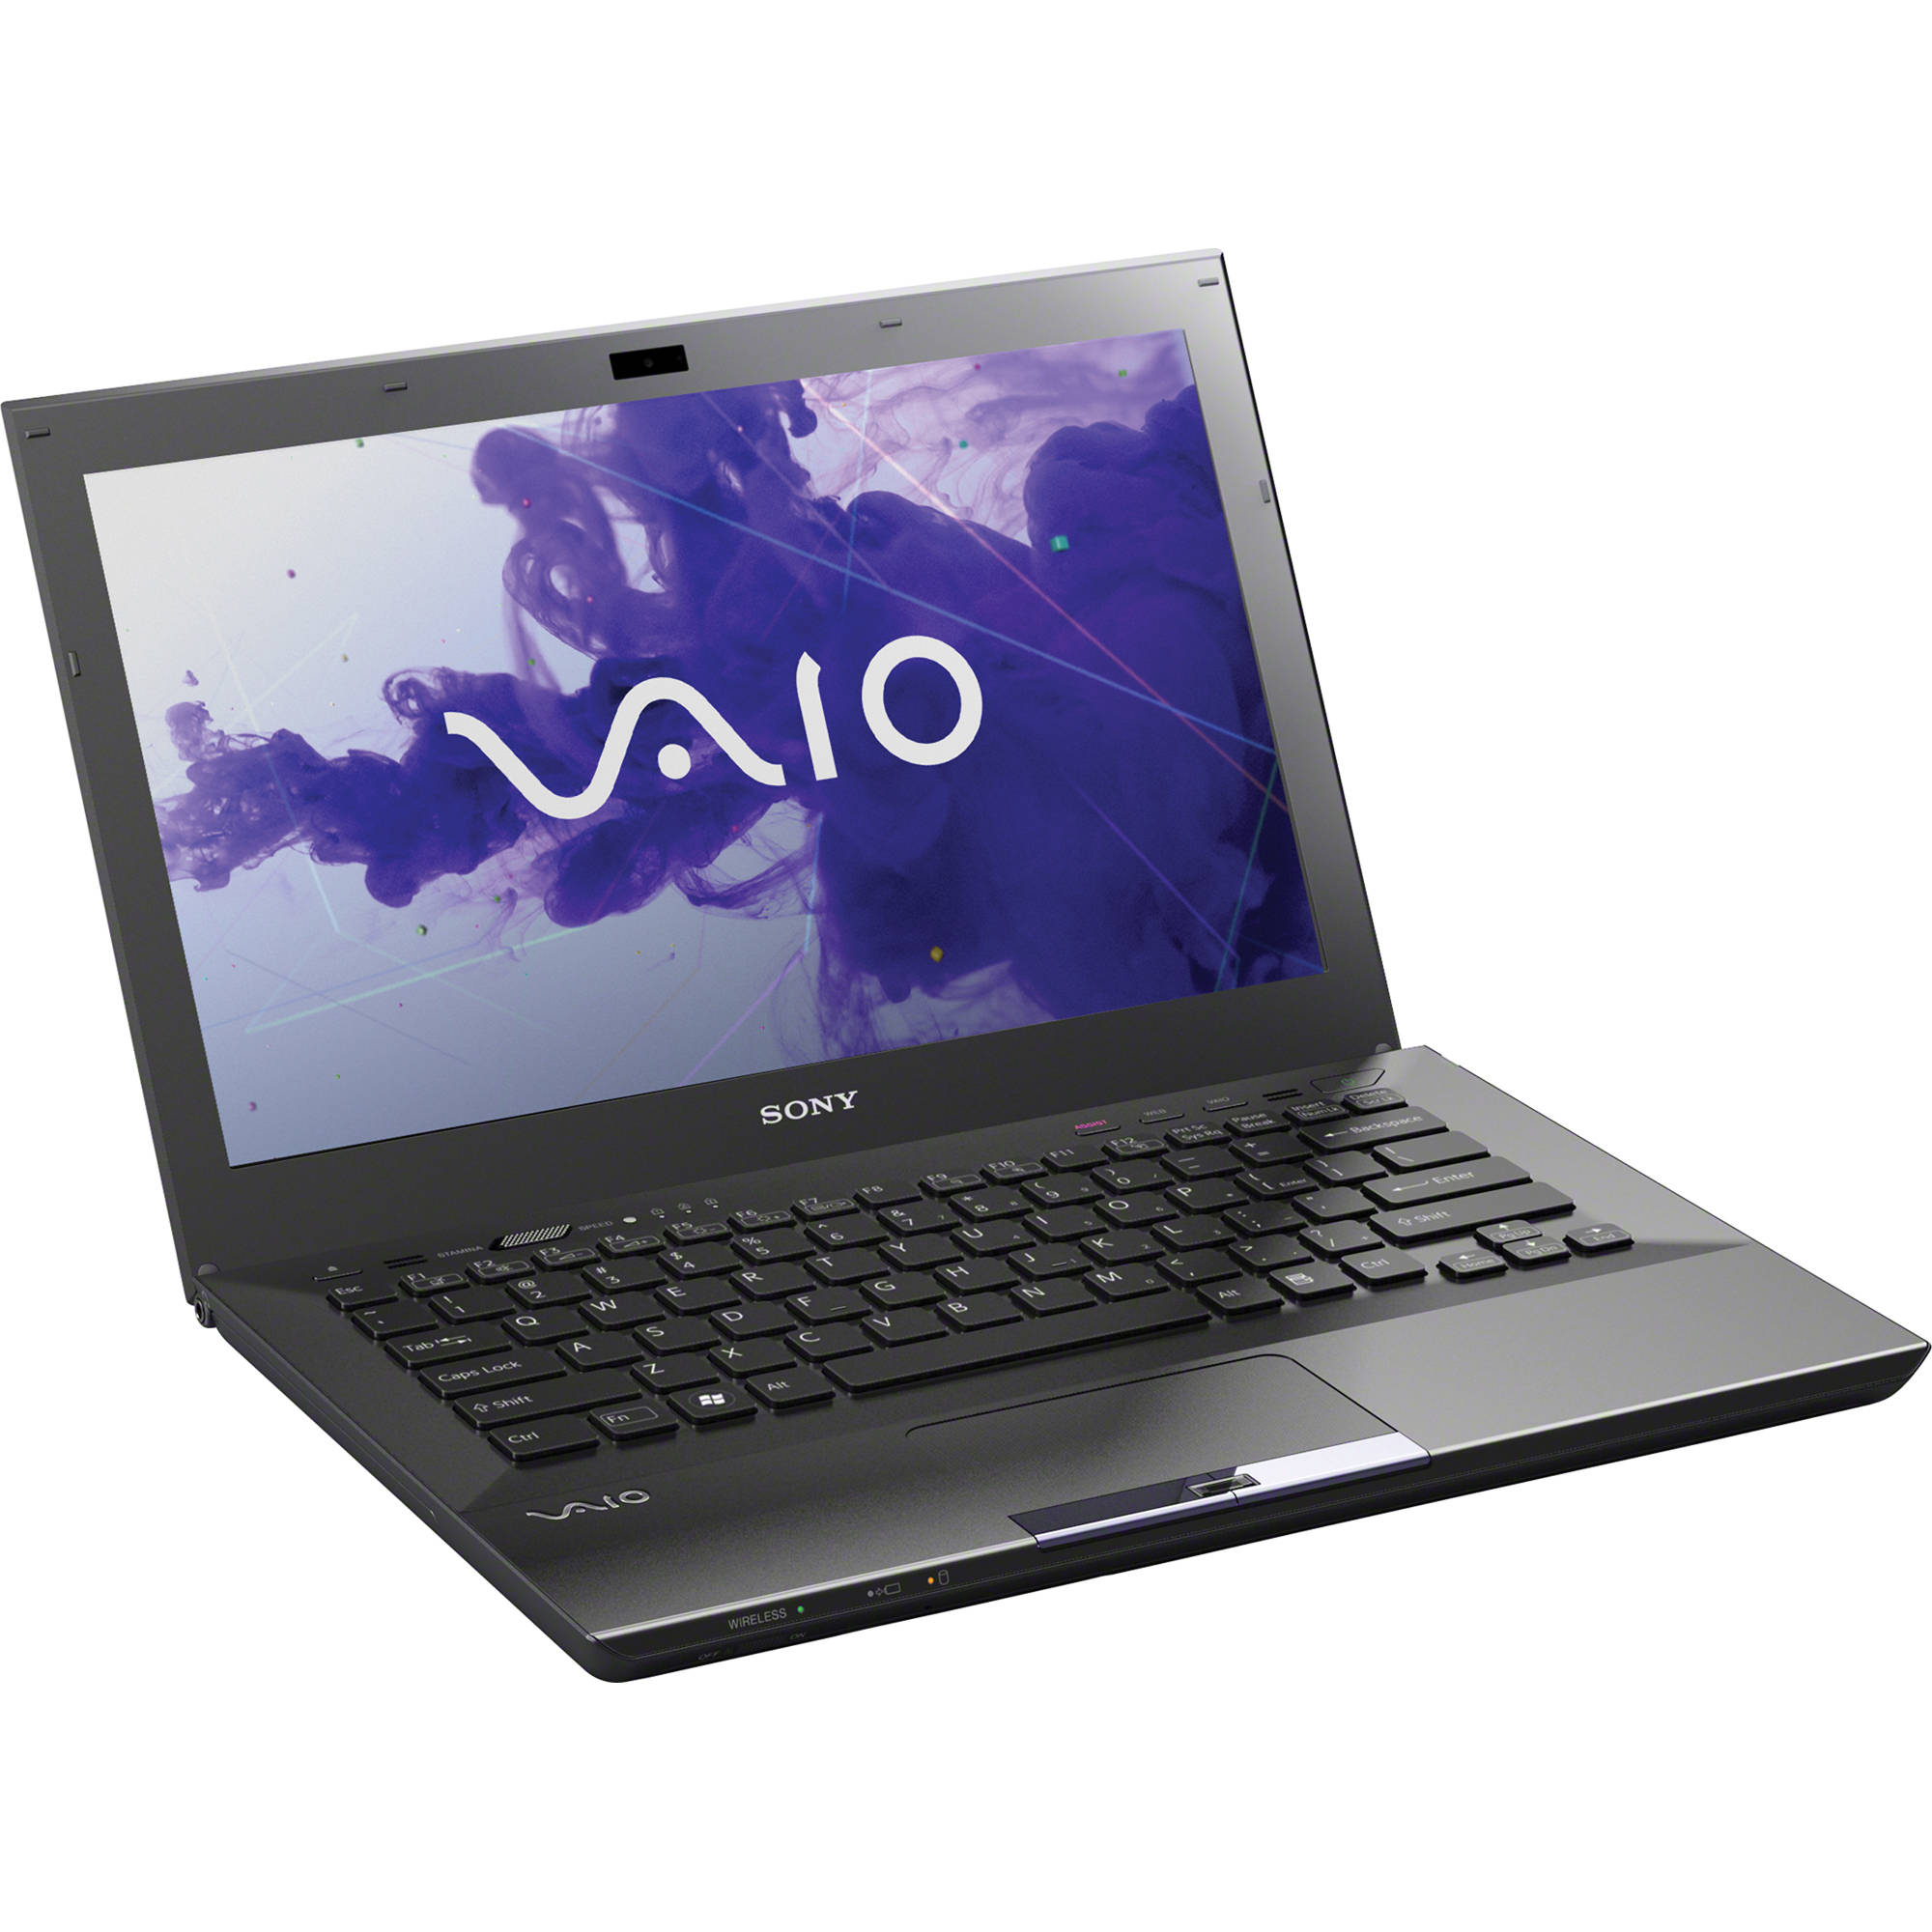 Sony Vaio VPCSA41FX AuthenTec Fingerprint Sensor Drivers (2019)